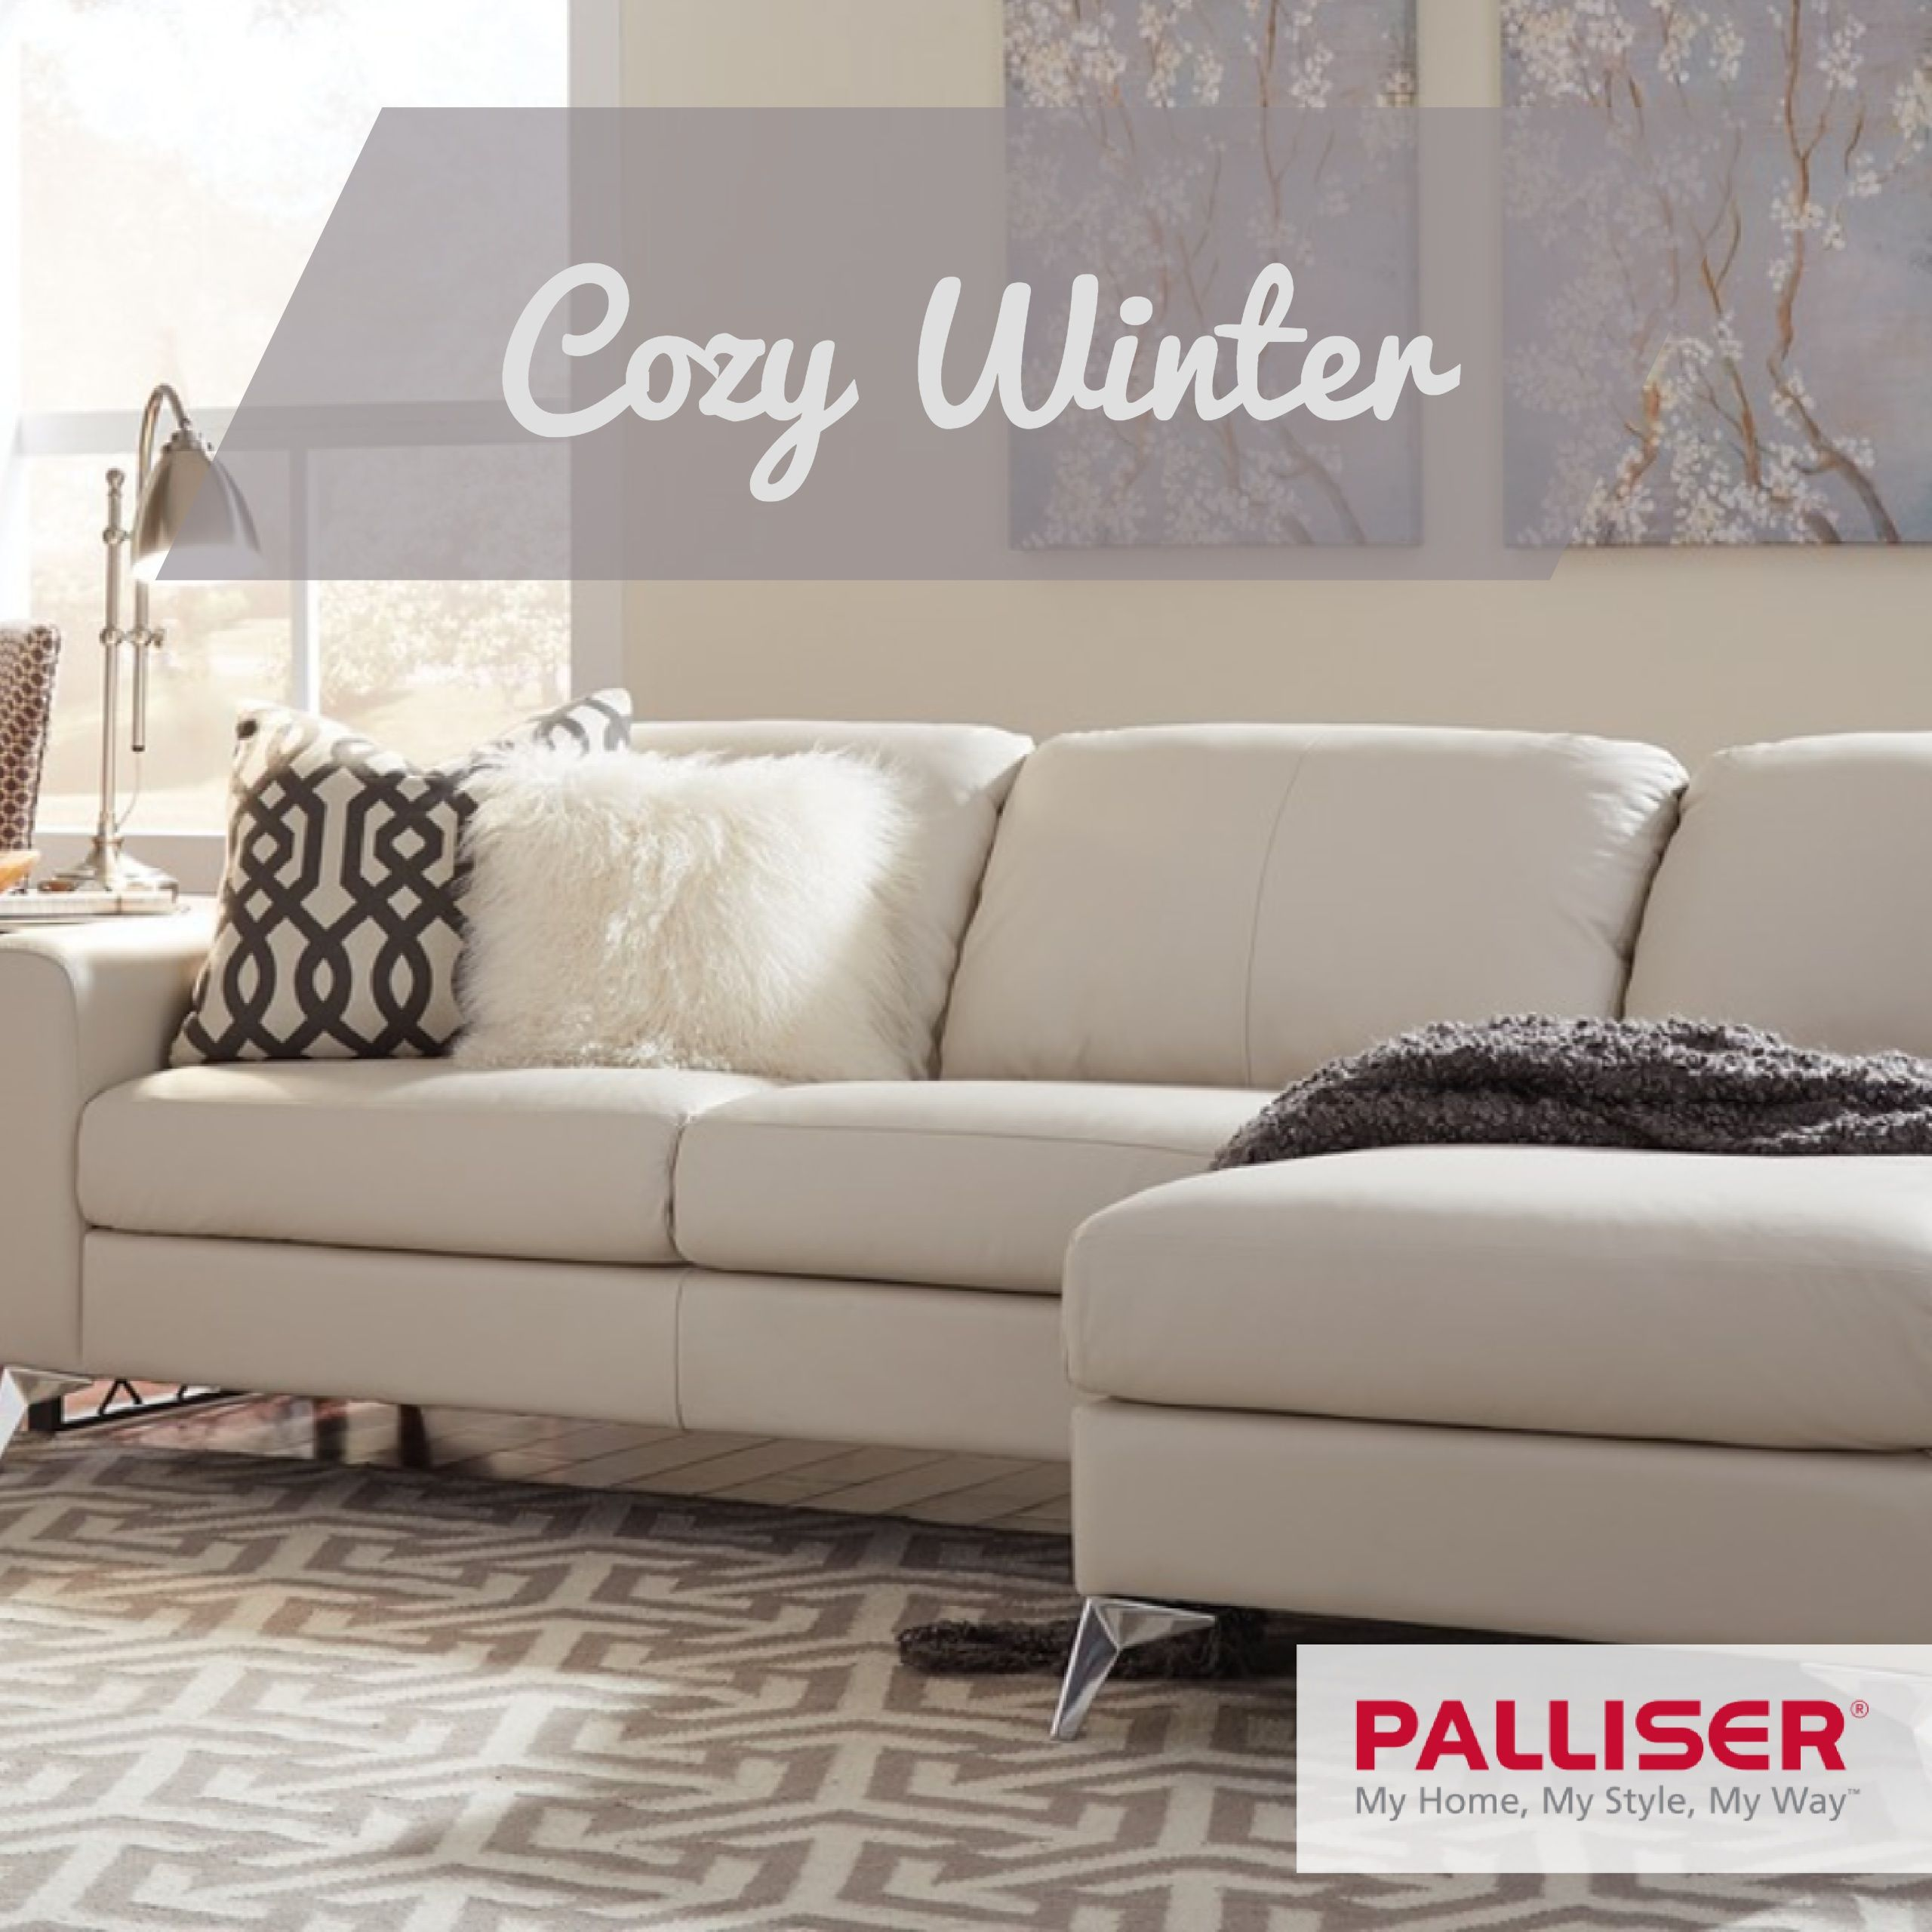 Cozy Home Theater: Keep Your Home Cozy This Winter With A Leather Sofa, Like